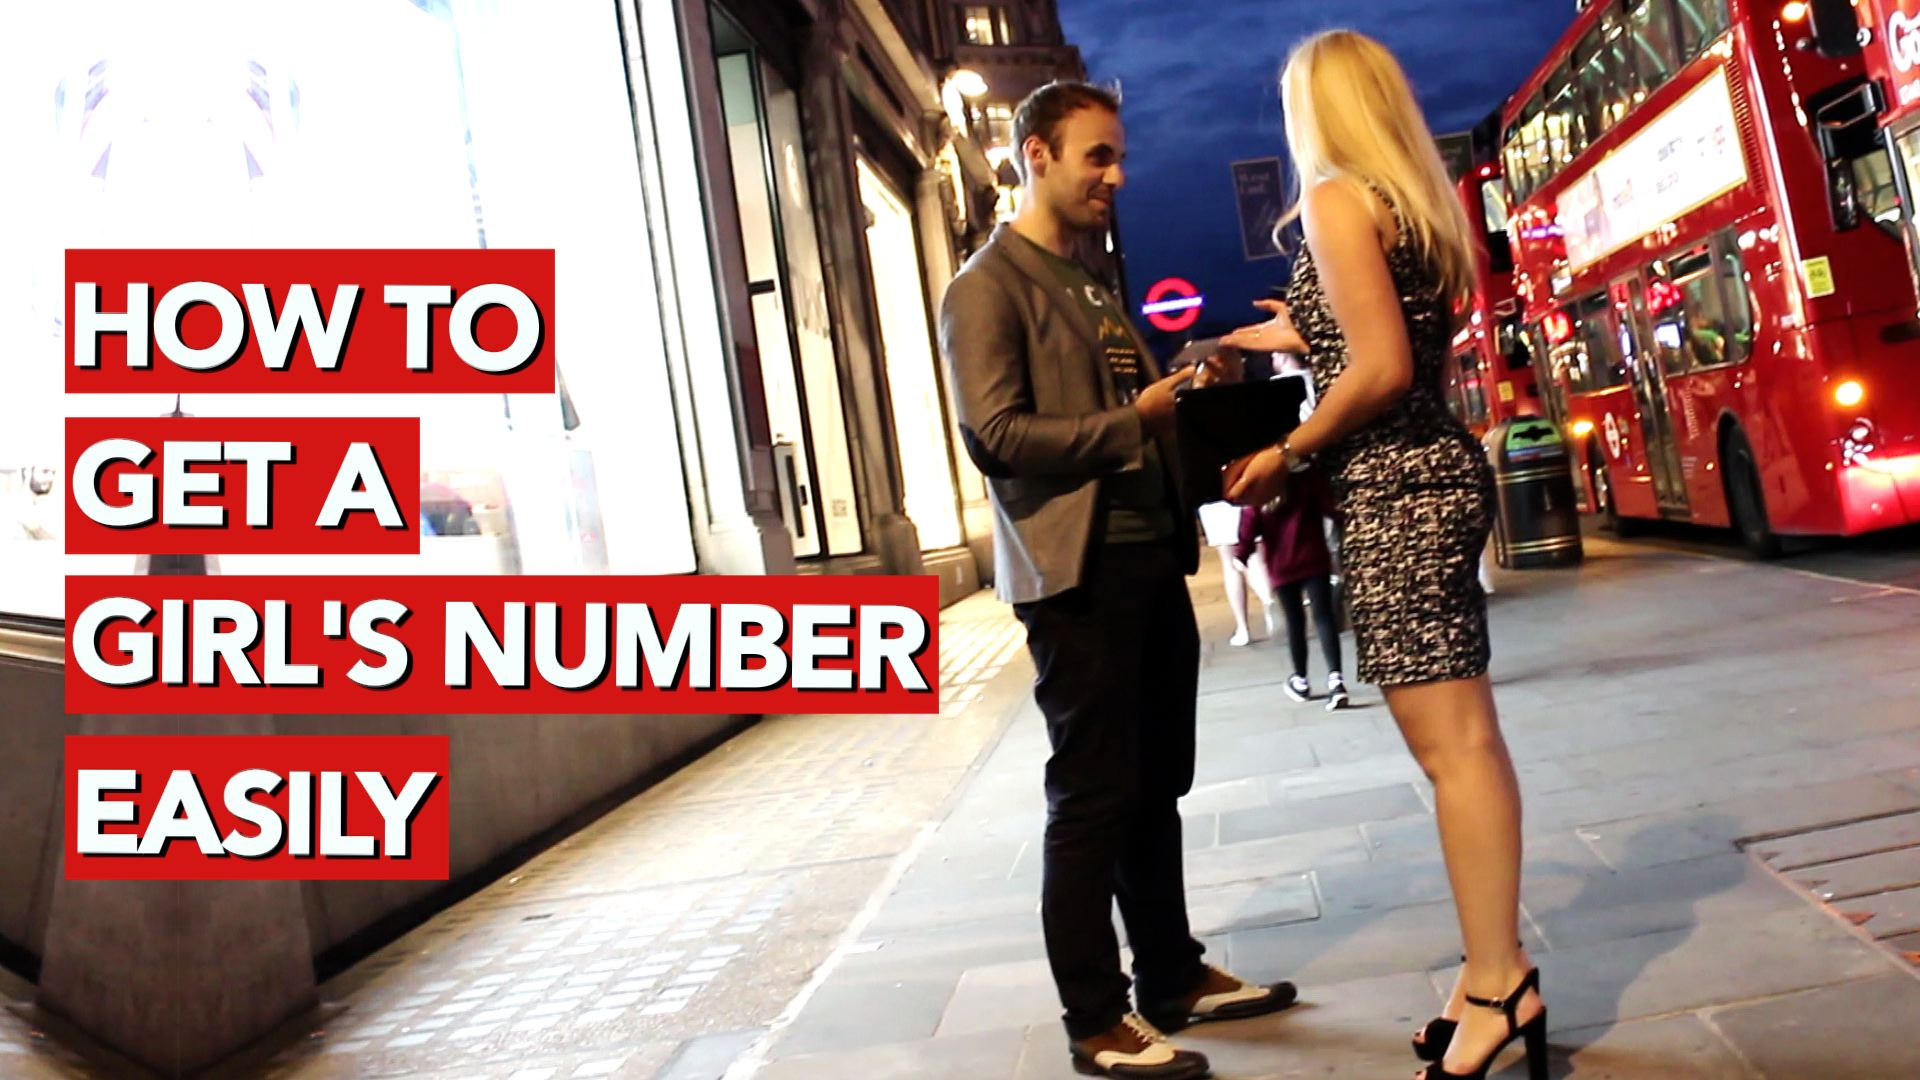 How to get a girls number easily